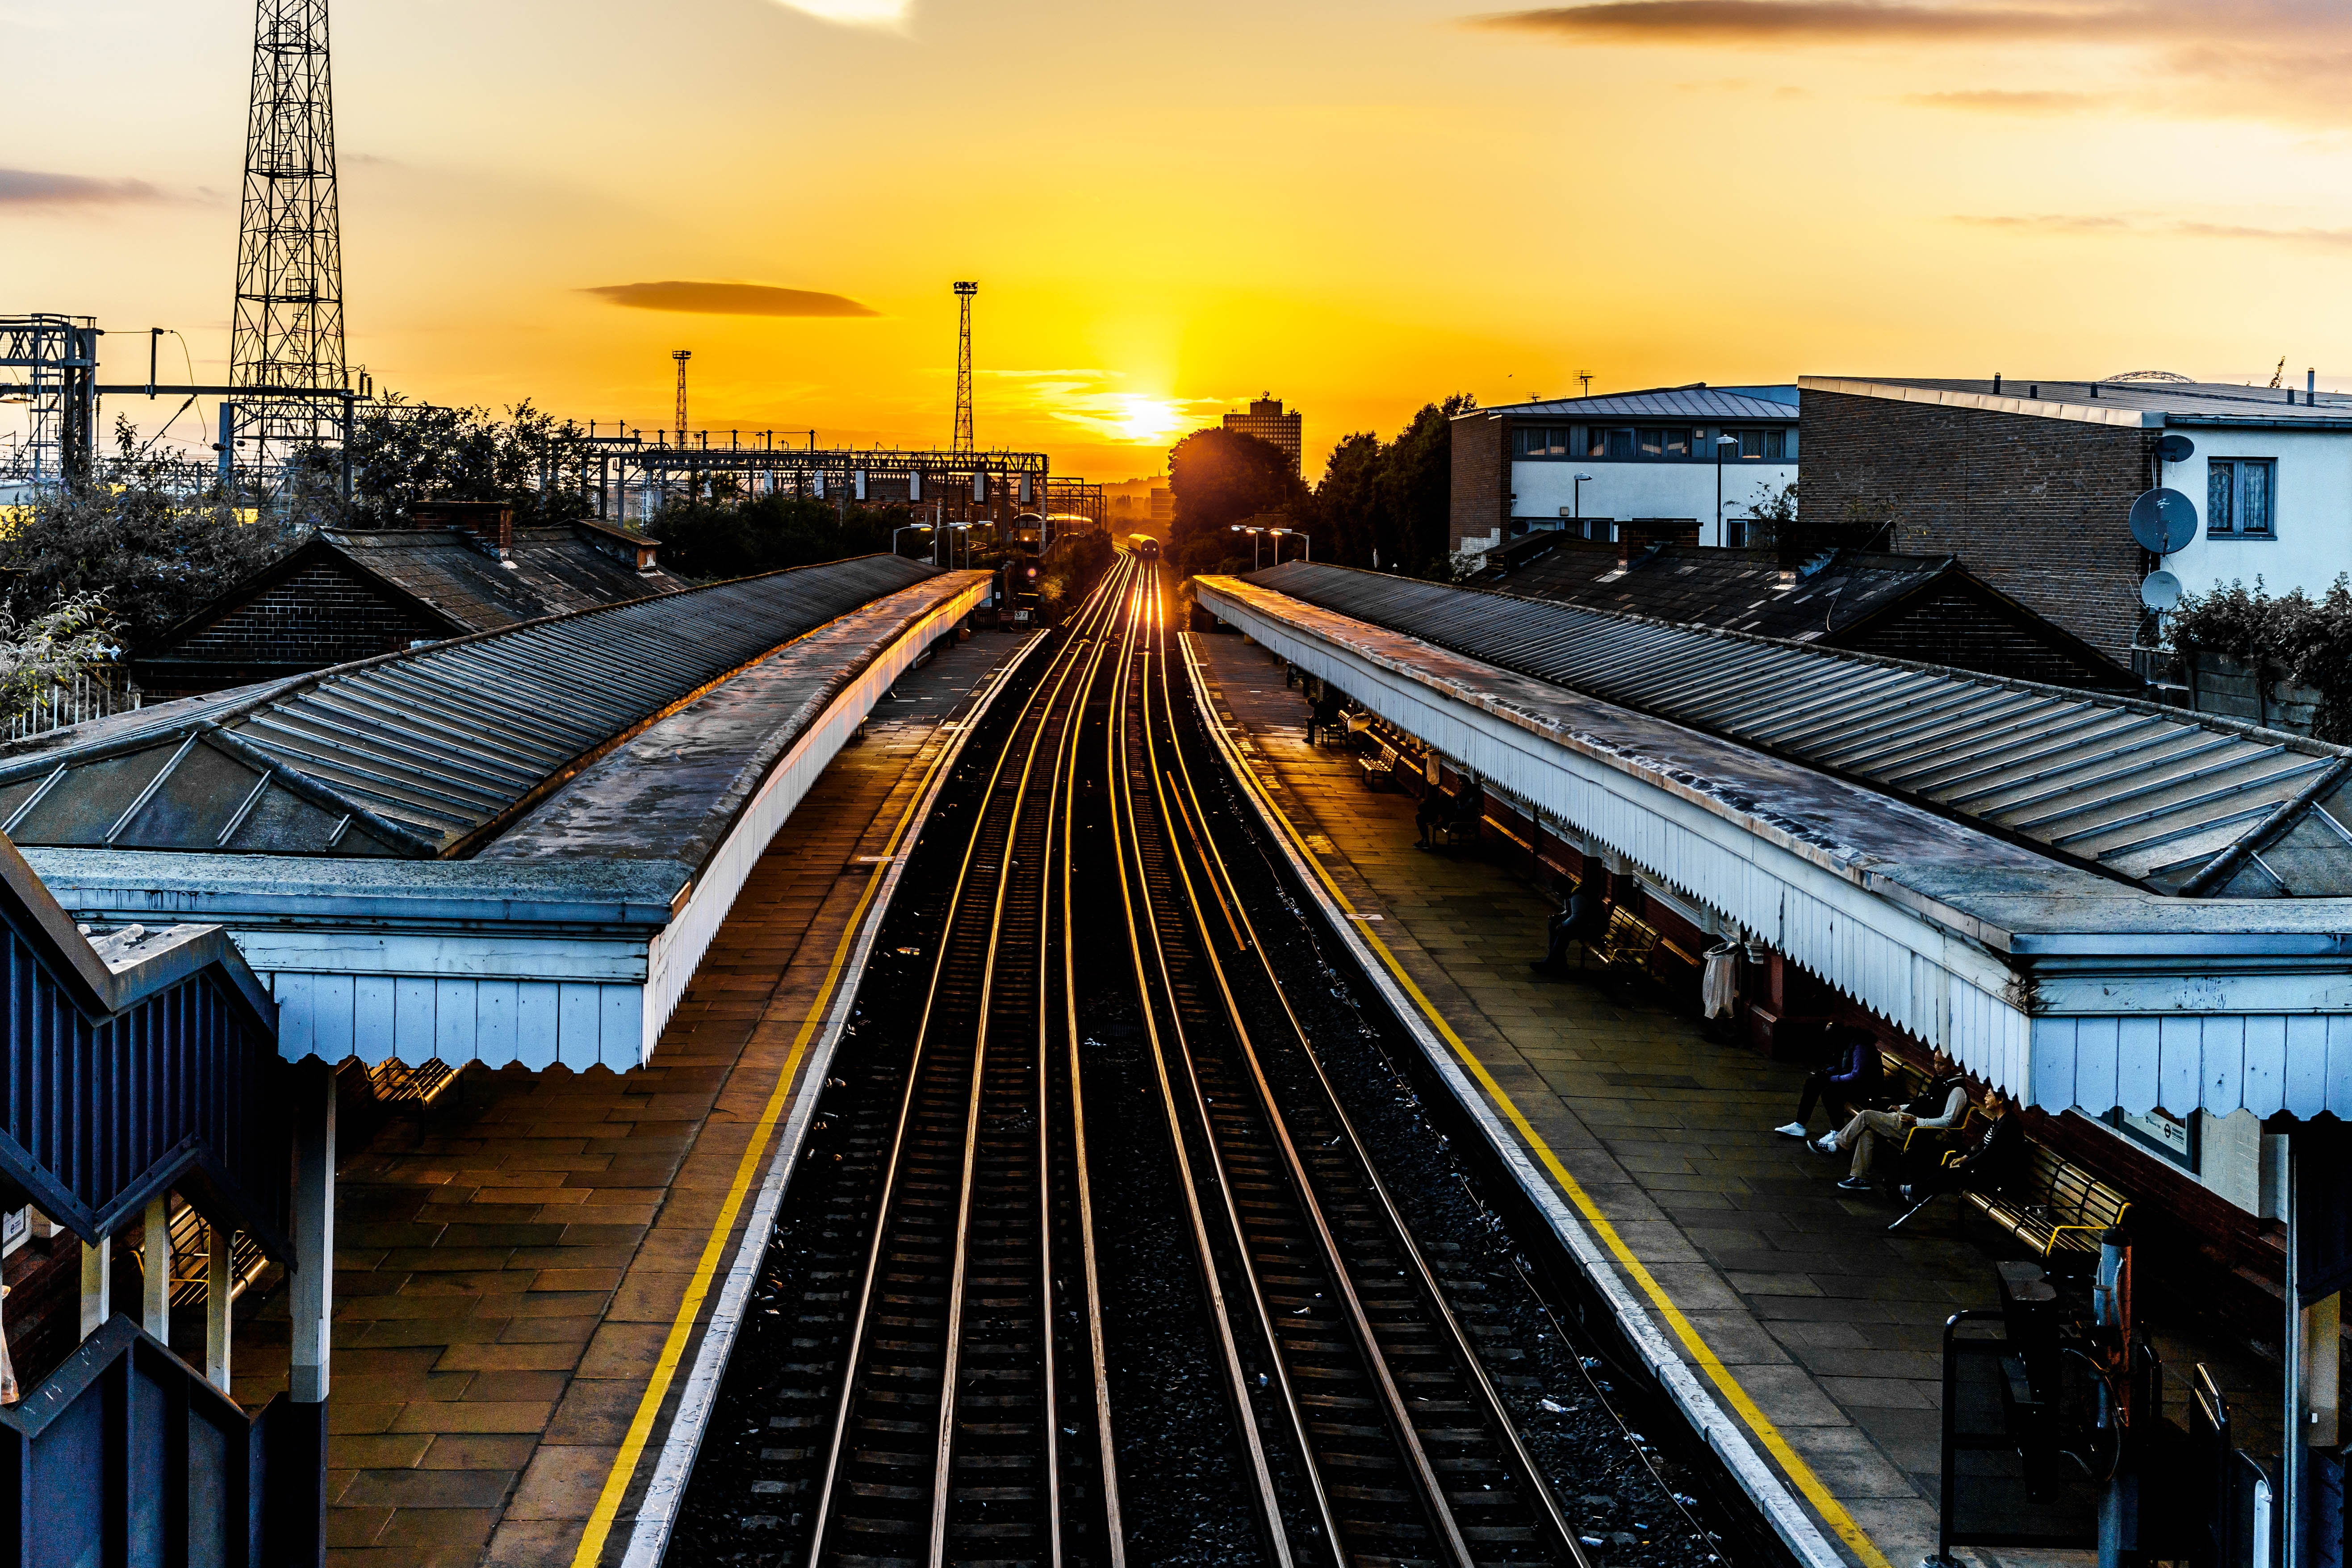 photo of brown train track at sunset